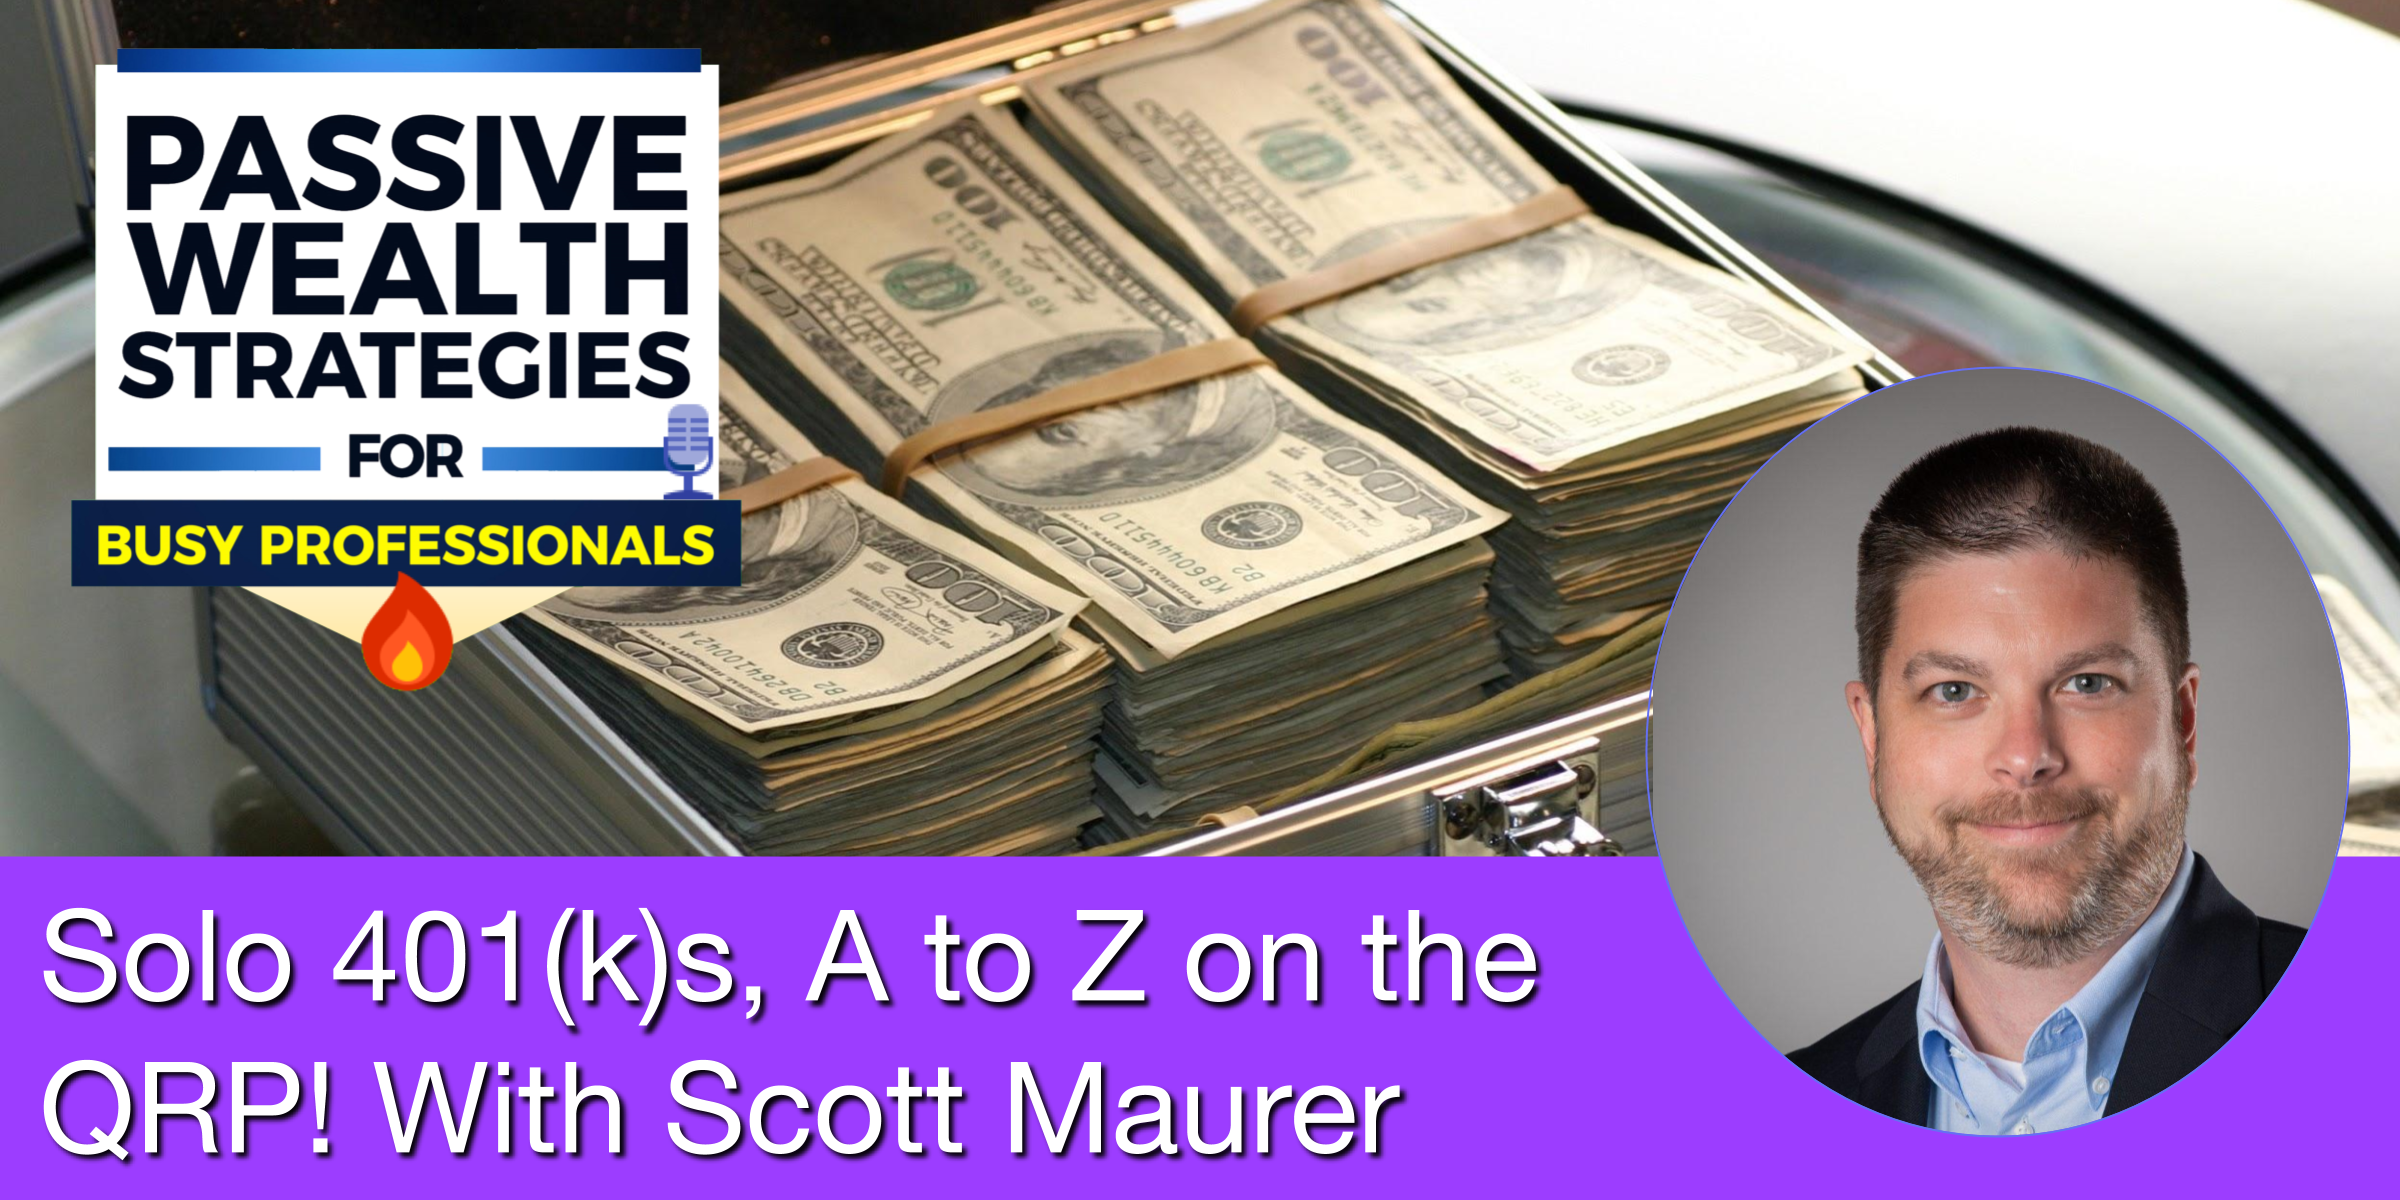 Solo 401(k)s, A to Z on the QRP! With Scott Maurer